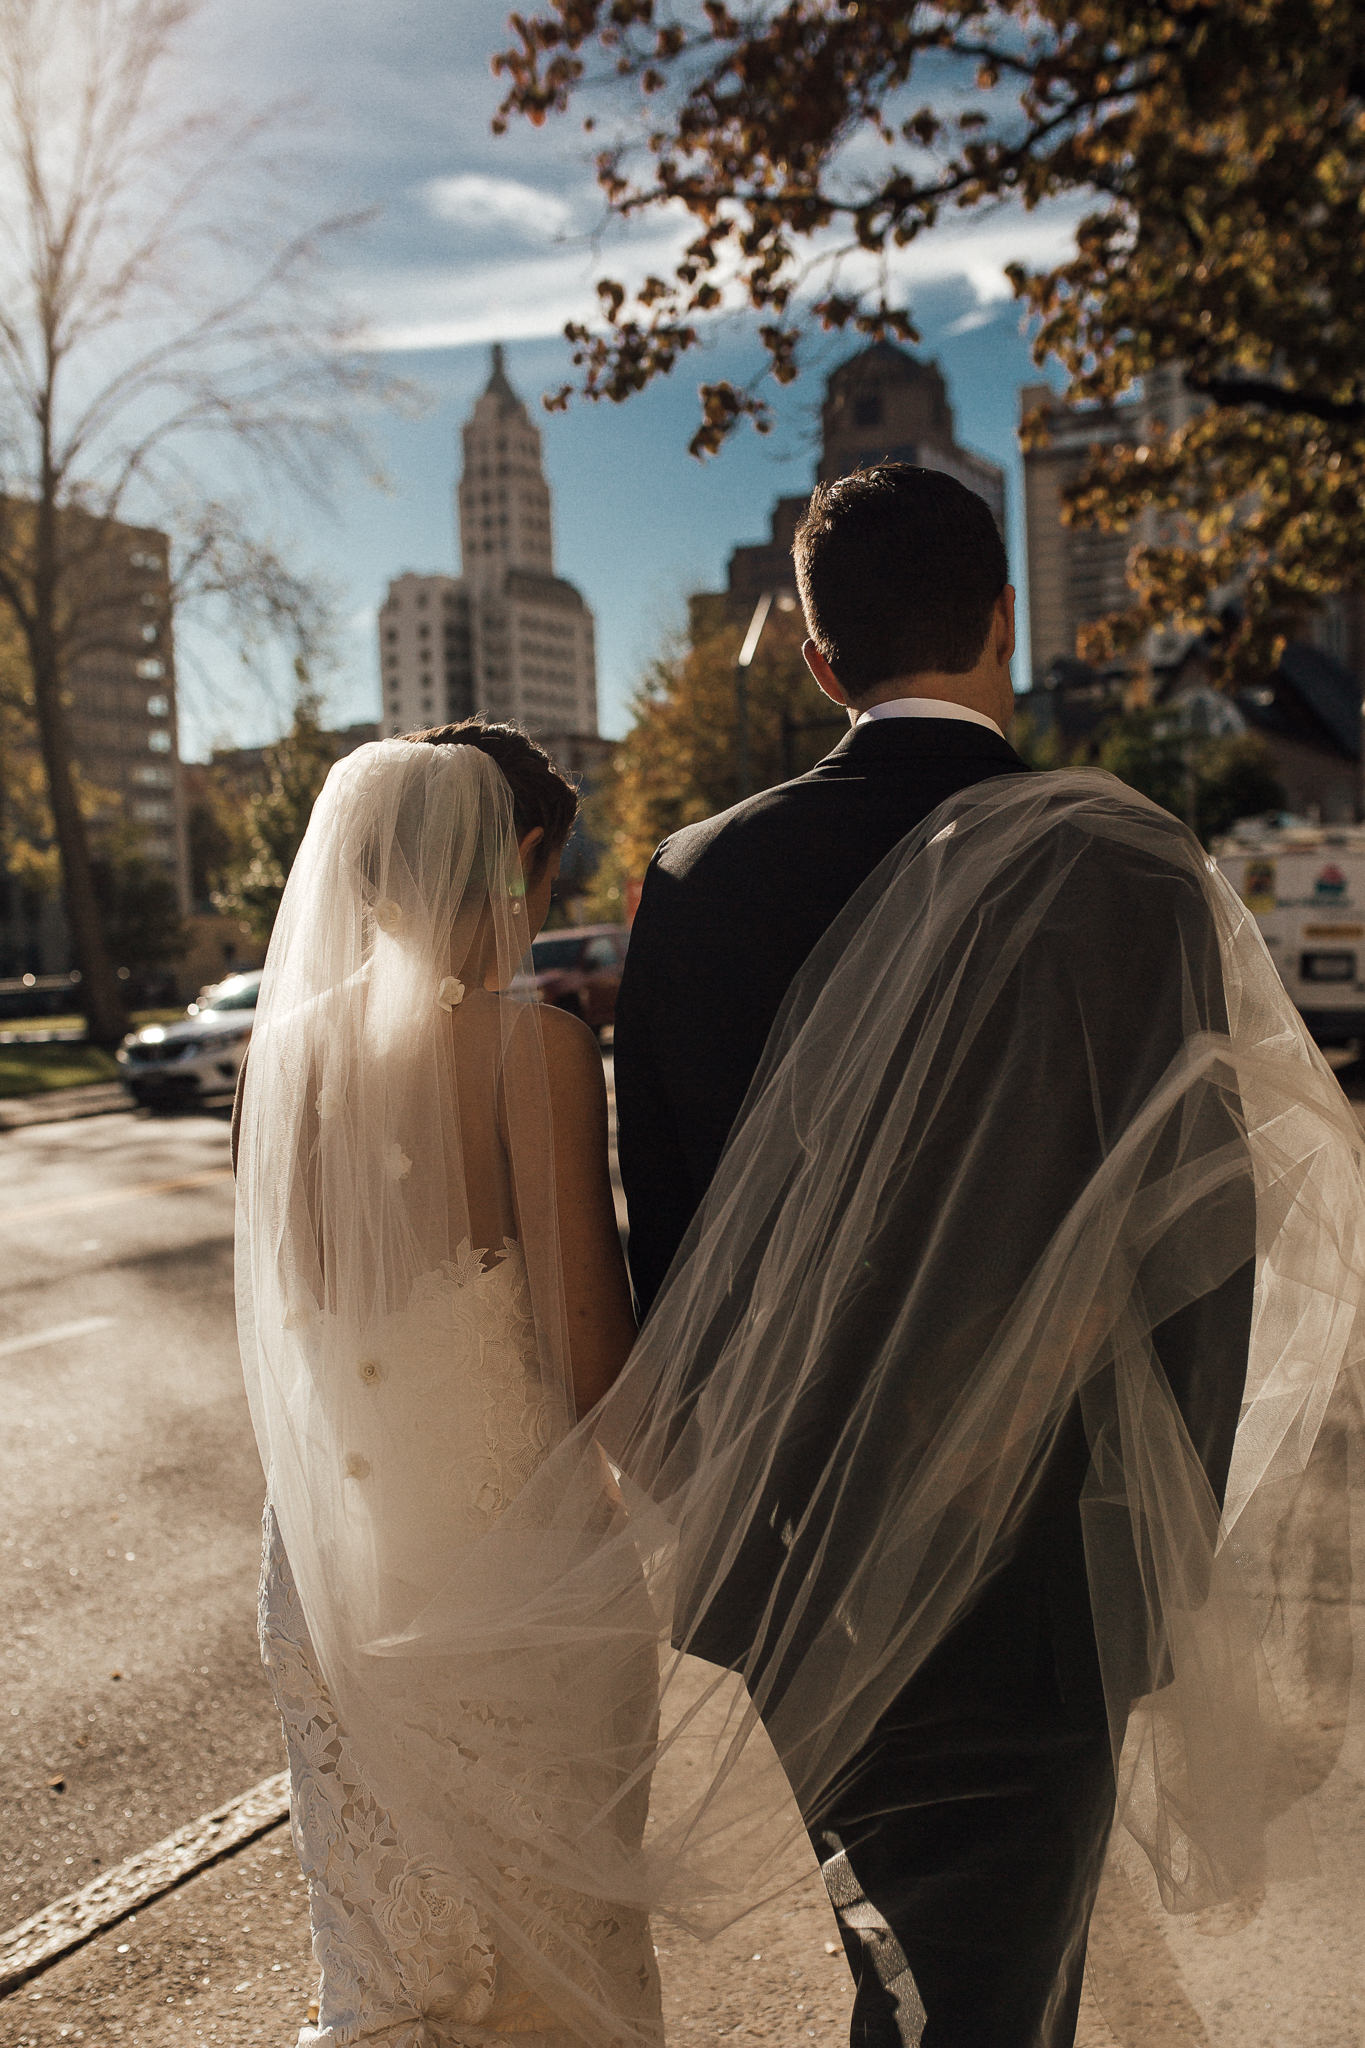 memphis-wedding-photographers-the-warmth-around-you-cassie-cook-photography-26.jpg